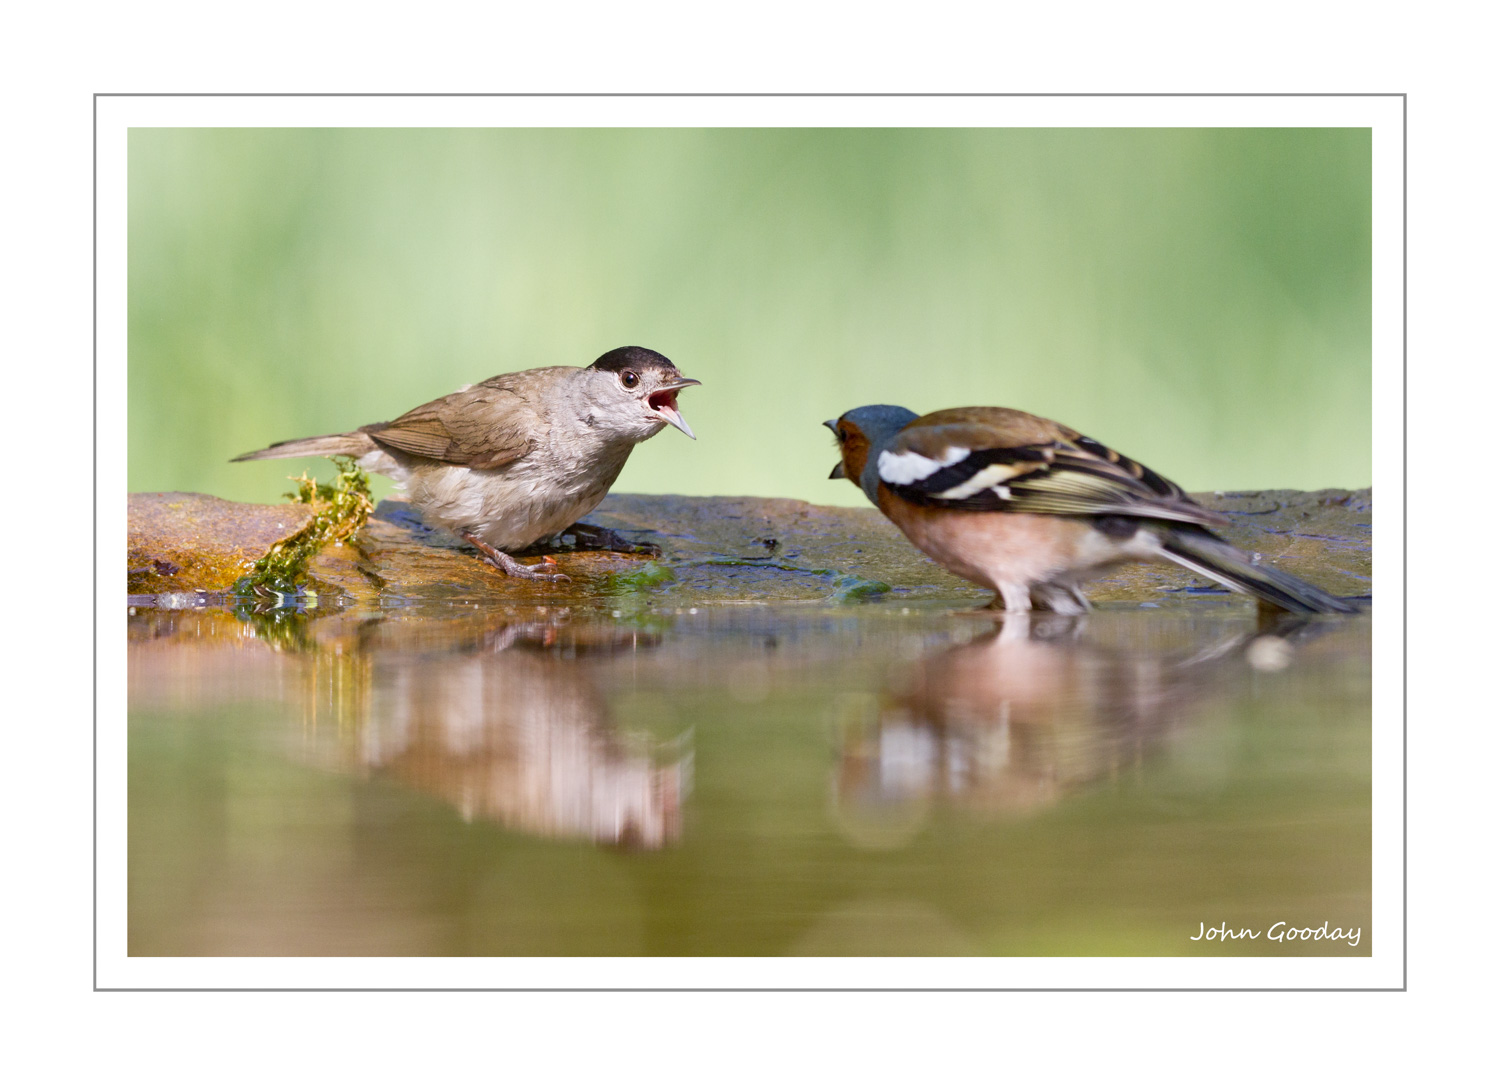 (Image: Blackcap challenging a Common Chaffinch. Canon EOS 7D, EF300mm f/2.8L IS, 1/400 sec @ f/4.5, ISO 640, tripod, hide)